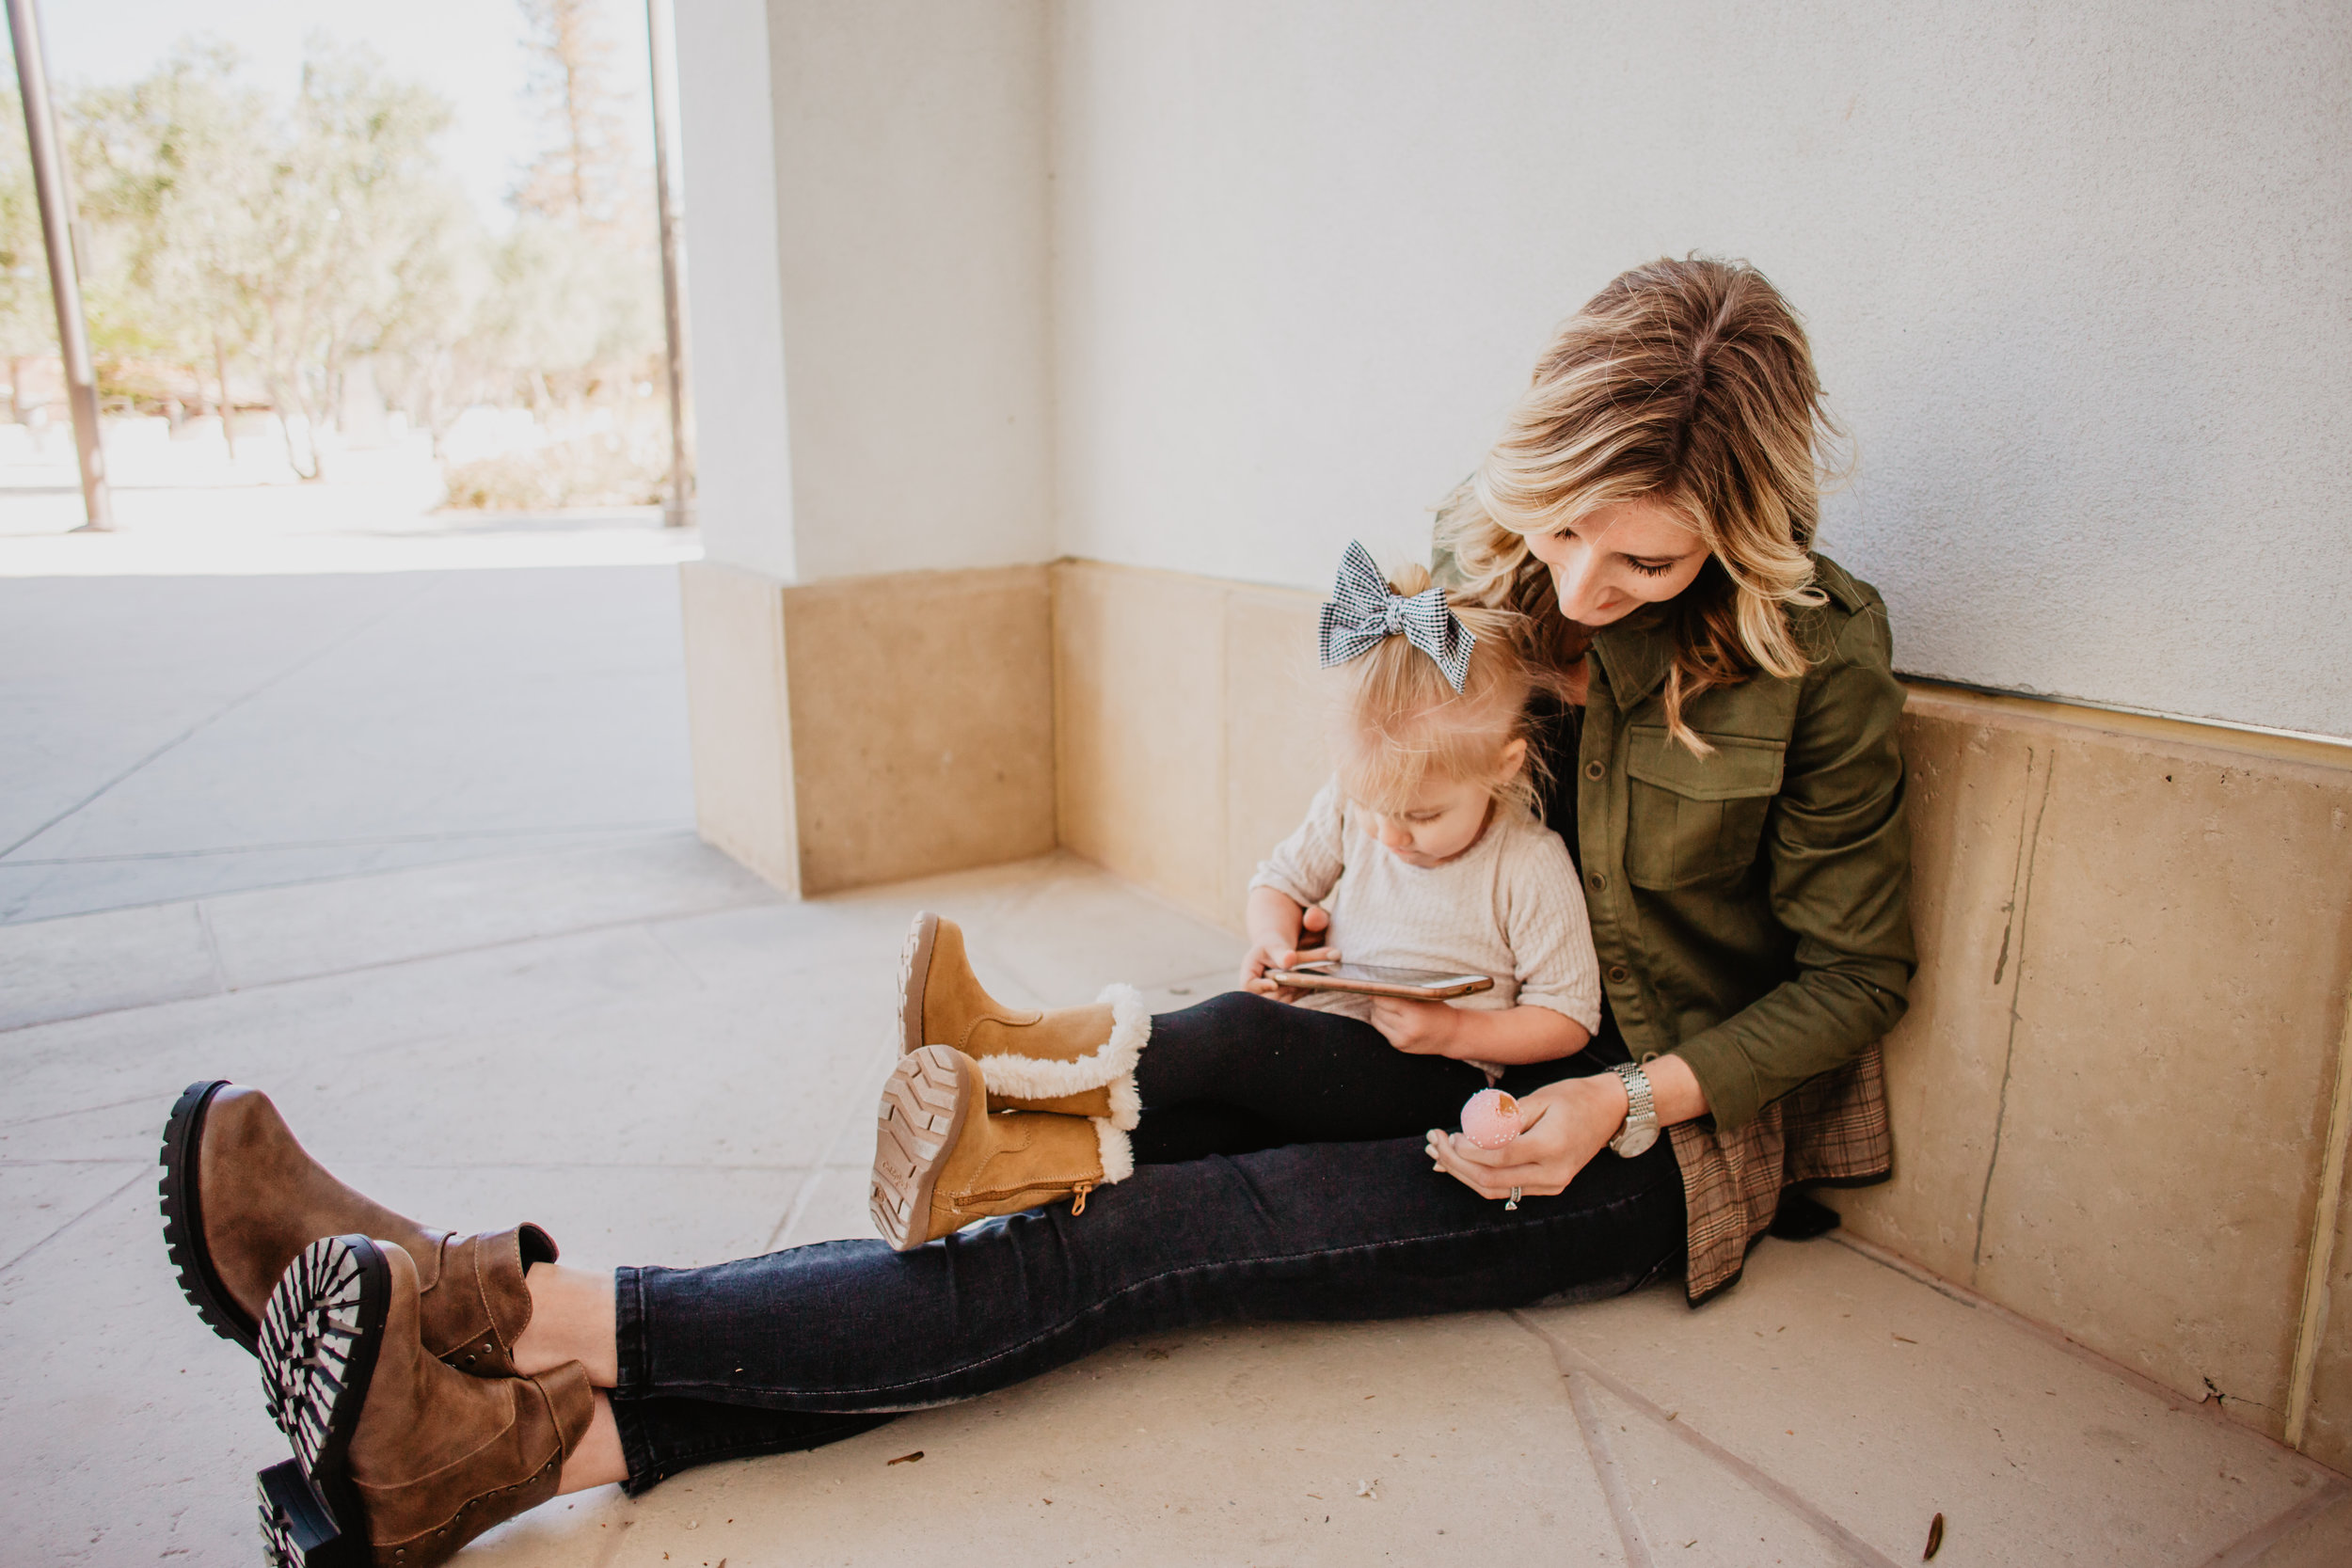 Cute Small Shop Kids Clothes - Affordable Mom Fashion Blog - Thistle & Finn -- Mommy Blog - The Overwhelmed Mommy